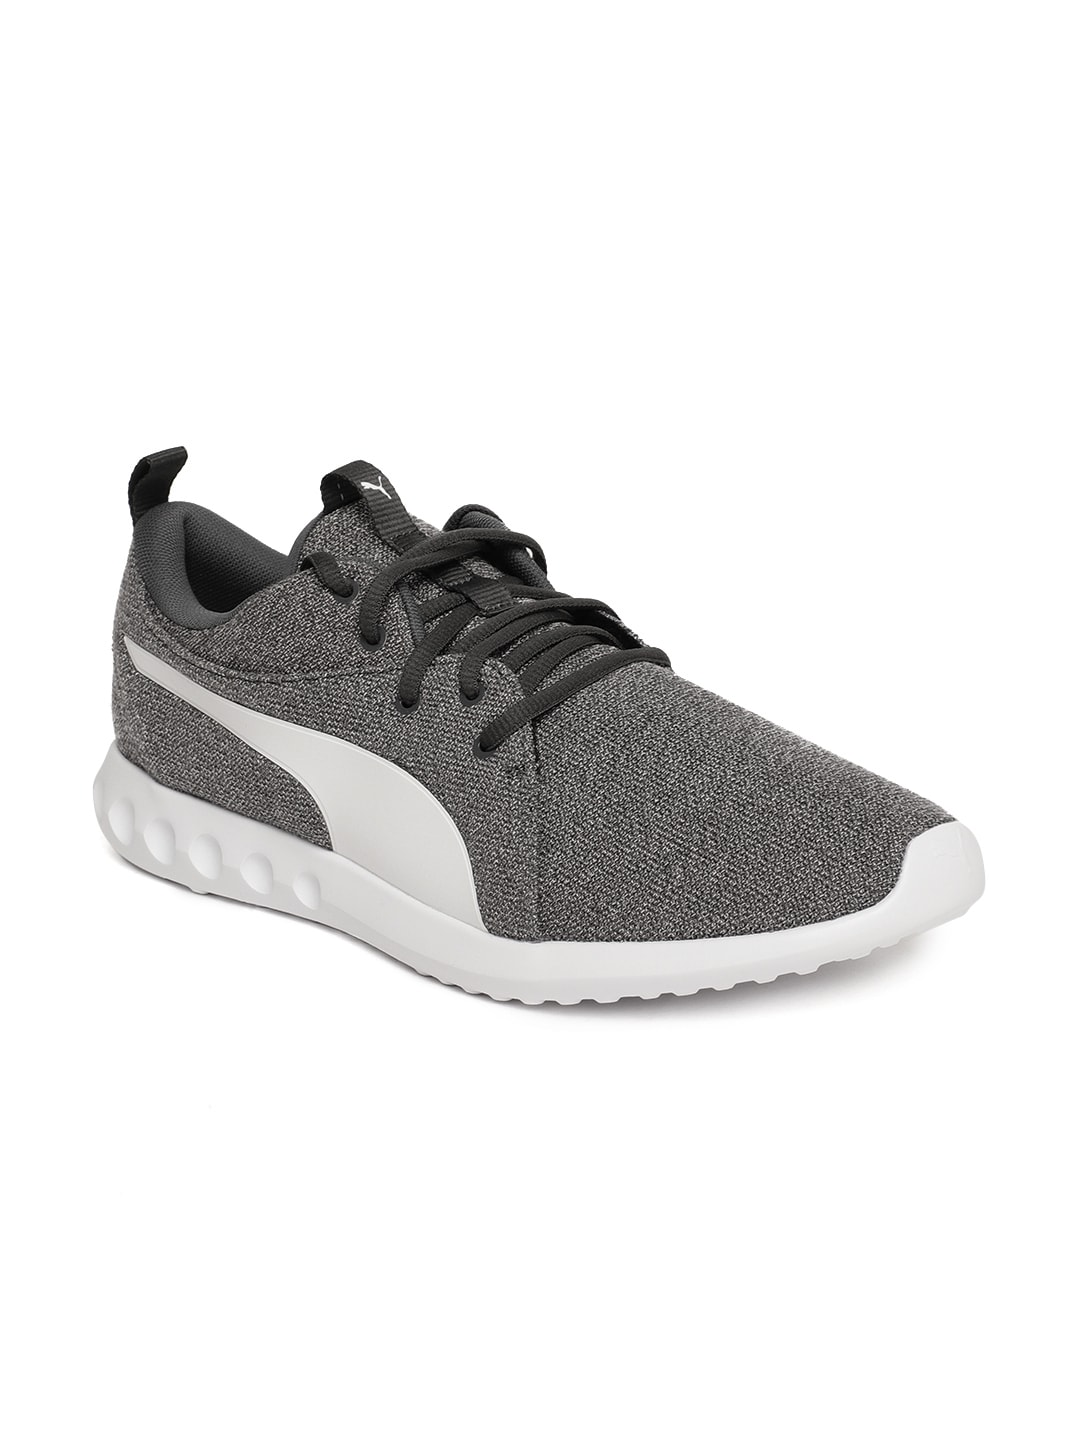 Puma Men Women Online India amp; Buy Shoes For In OrqxZUO